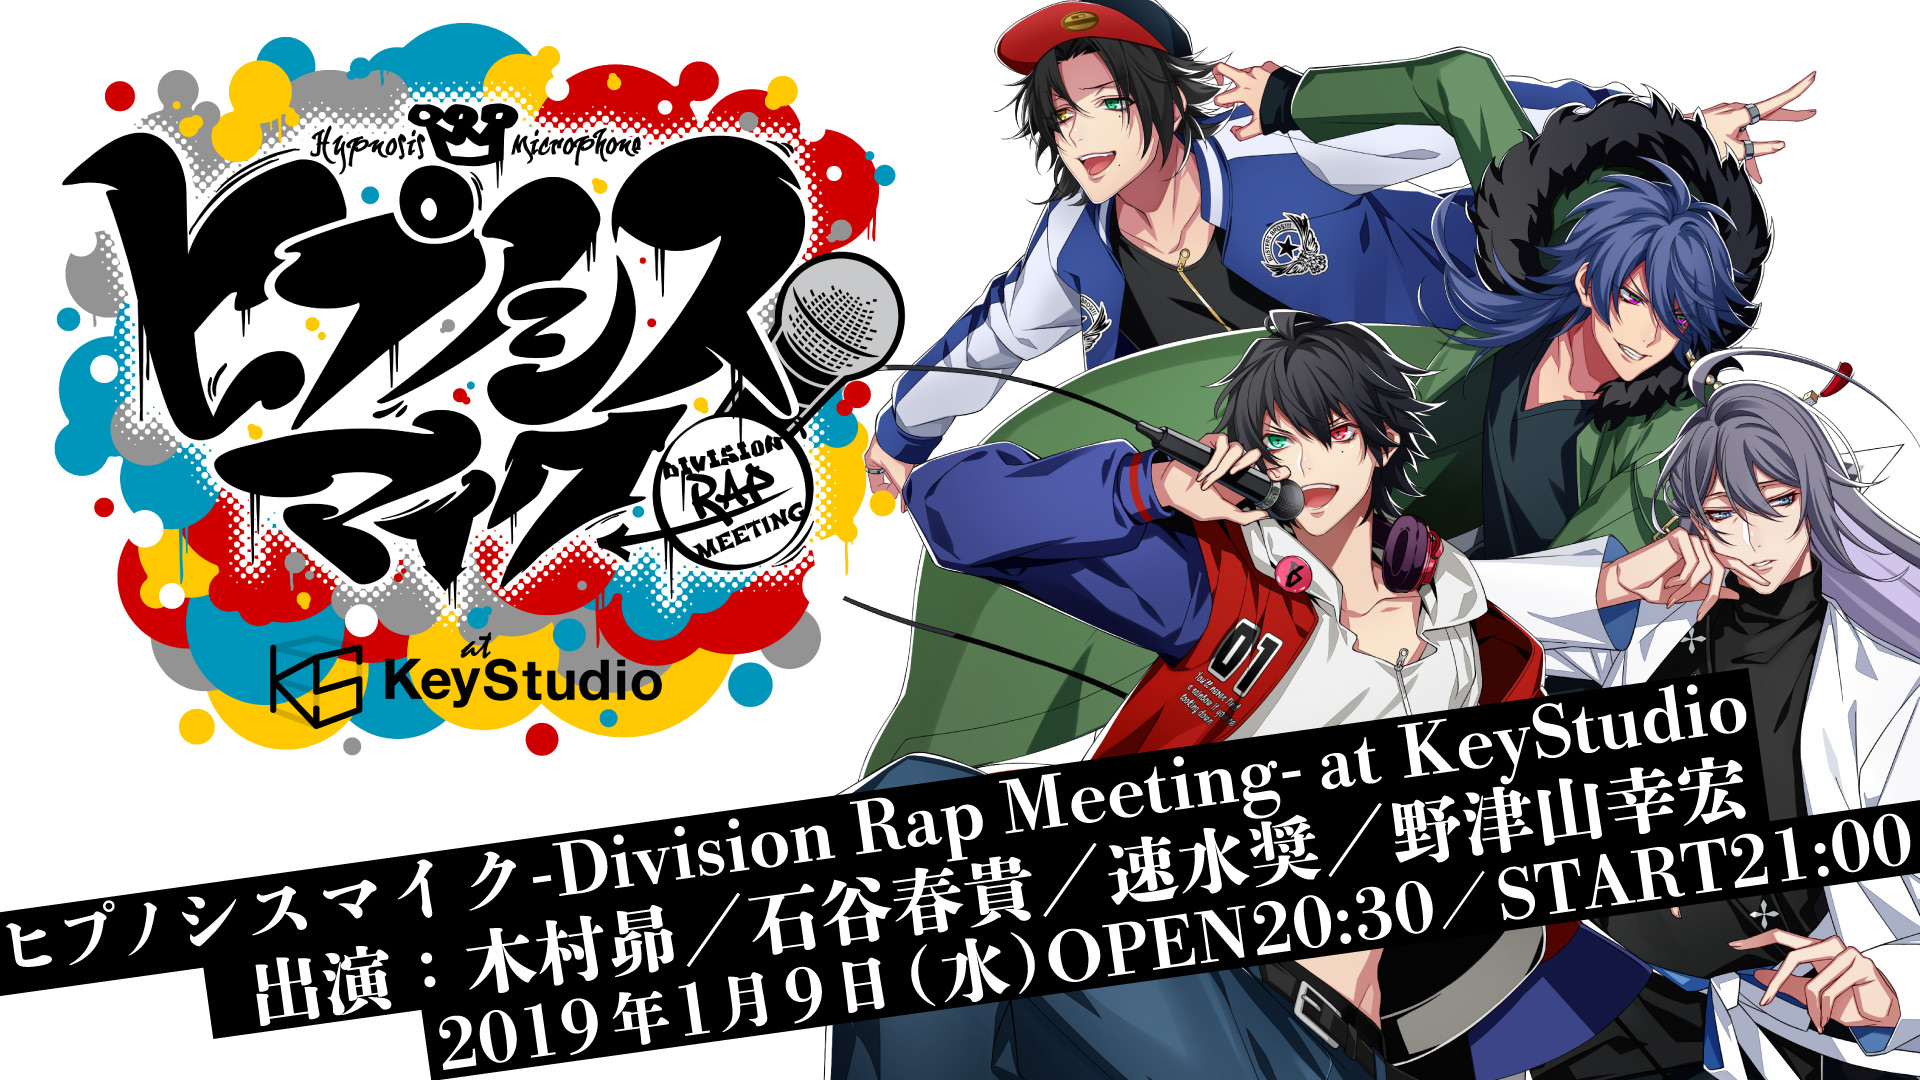 ヒプノシスマイク -Division Rap Meeting- at KeyStudio #11